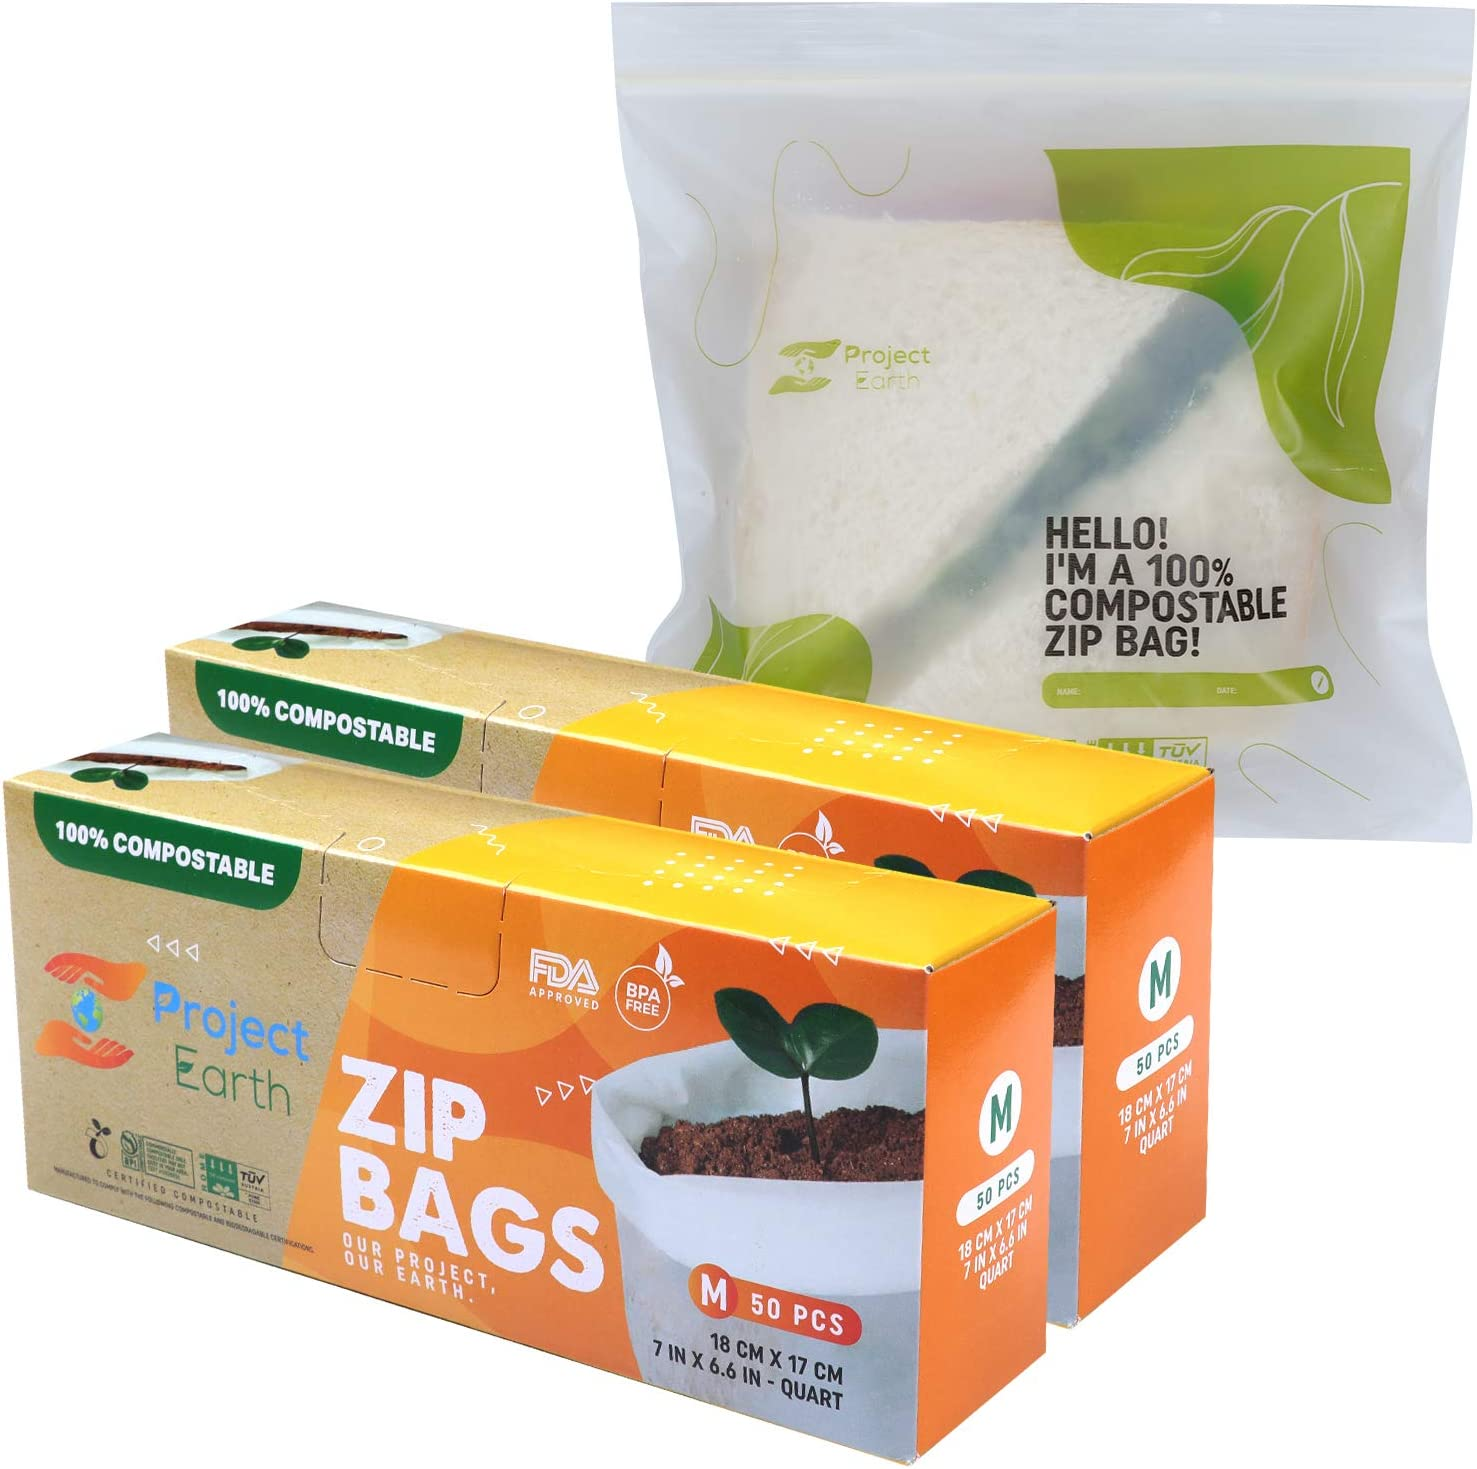 Project Earth Compostable Zip Bags, 100 Count Quart, 2 Pack | Freezer, Sandwich, Food Storage & More | Resealable Lock | Eco Responsible Product |